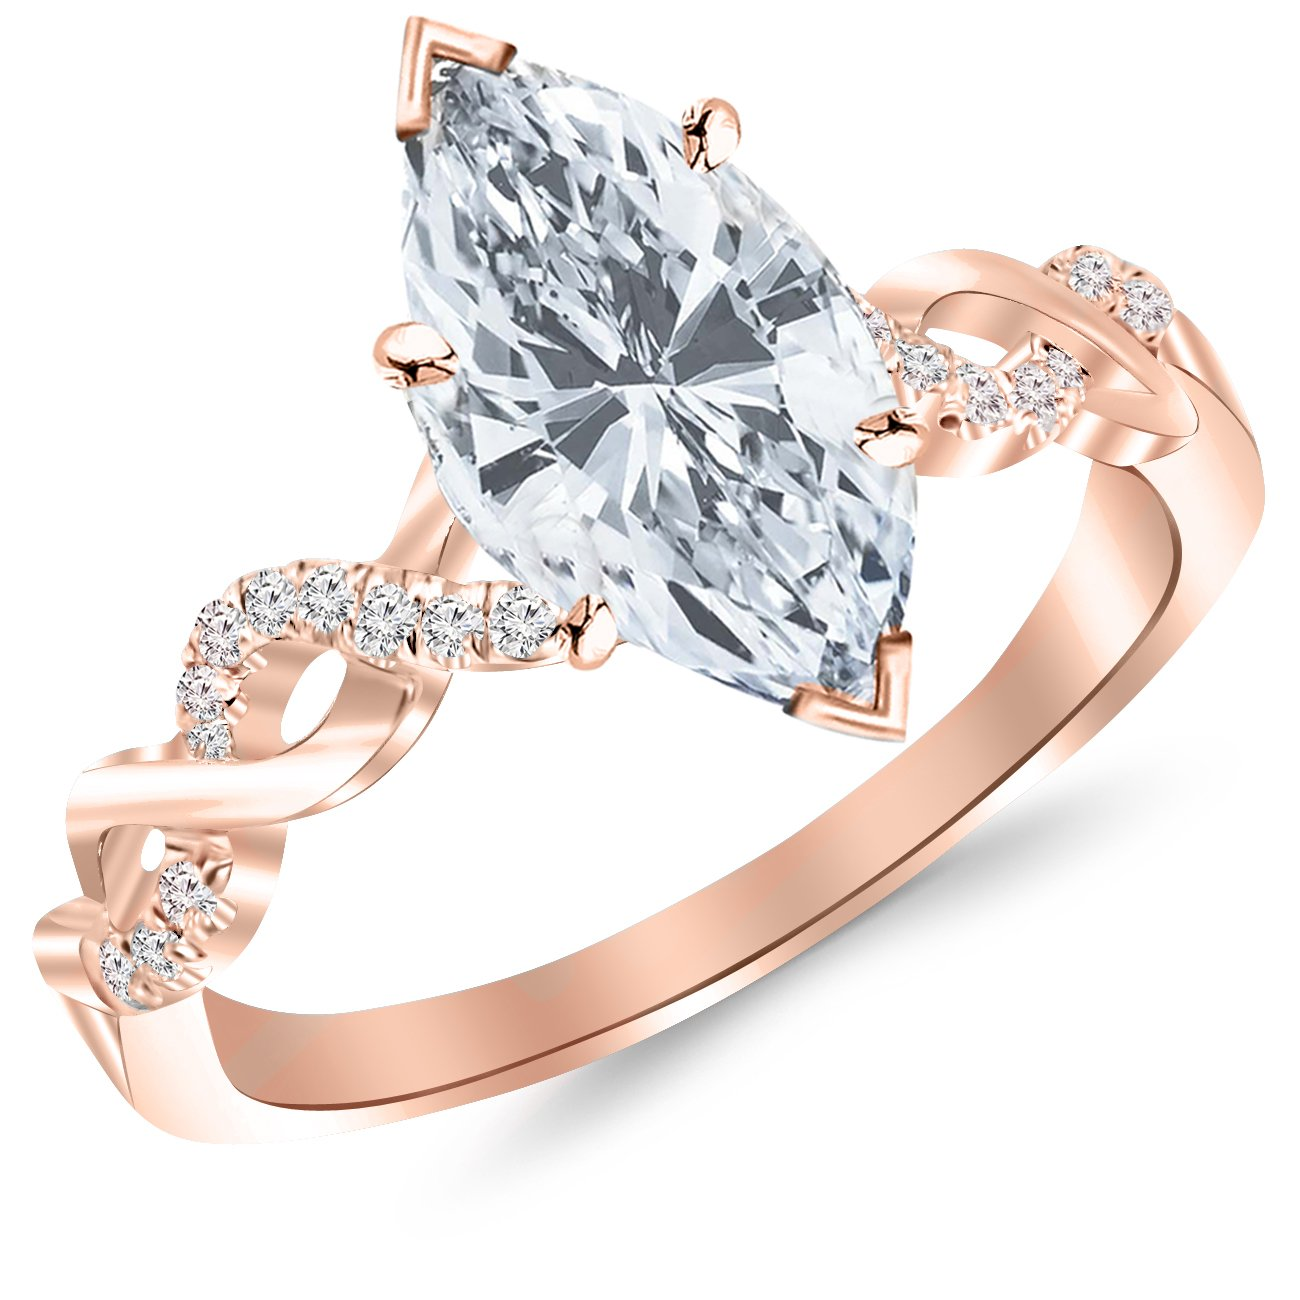 Rose Gold TPisting Infinity Gold and Diamond Split Shank Pave Set Diamond Engagement Ring Pith a 0.61 Carat Marquise Cut G-H Color SI2 Clarity Center Stone